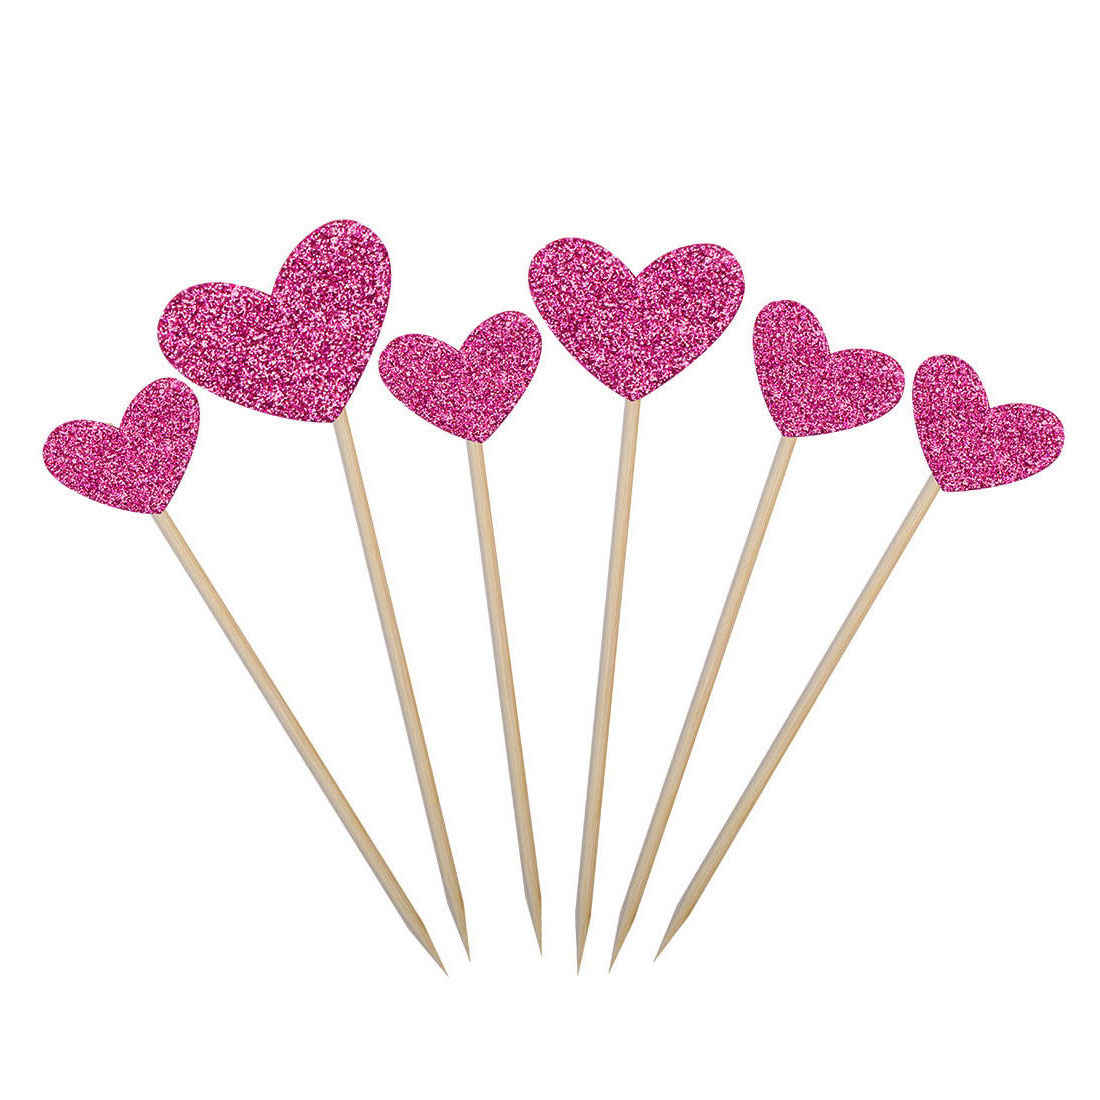 Party Cupcake Heart Shaped Glittery Toothpicks Craft Picks Topper Fuchsia 6 in 1